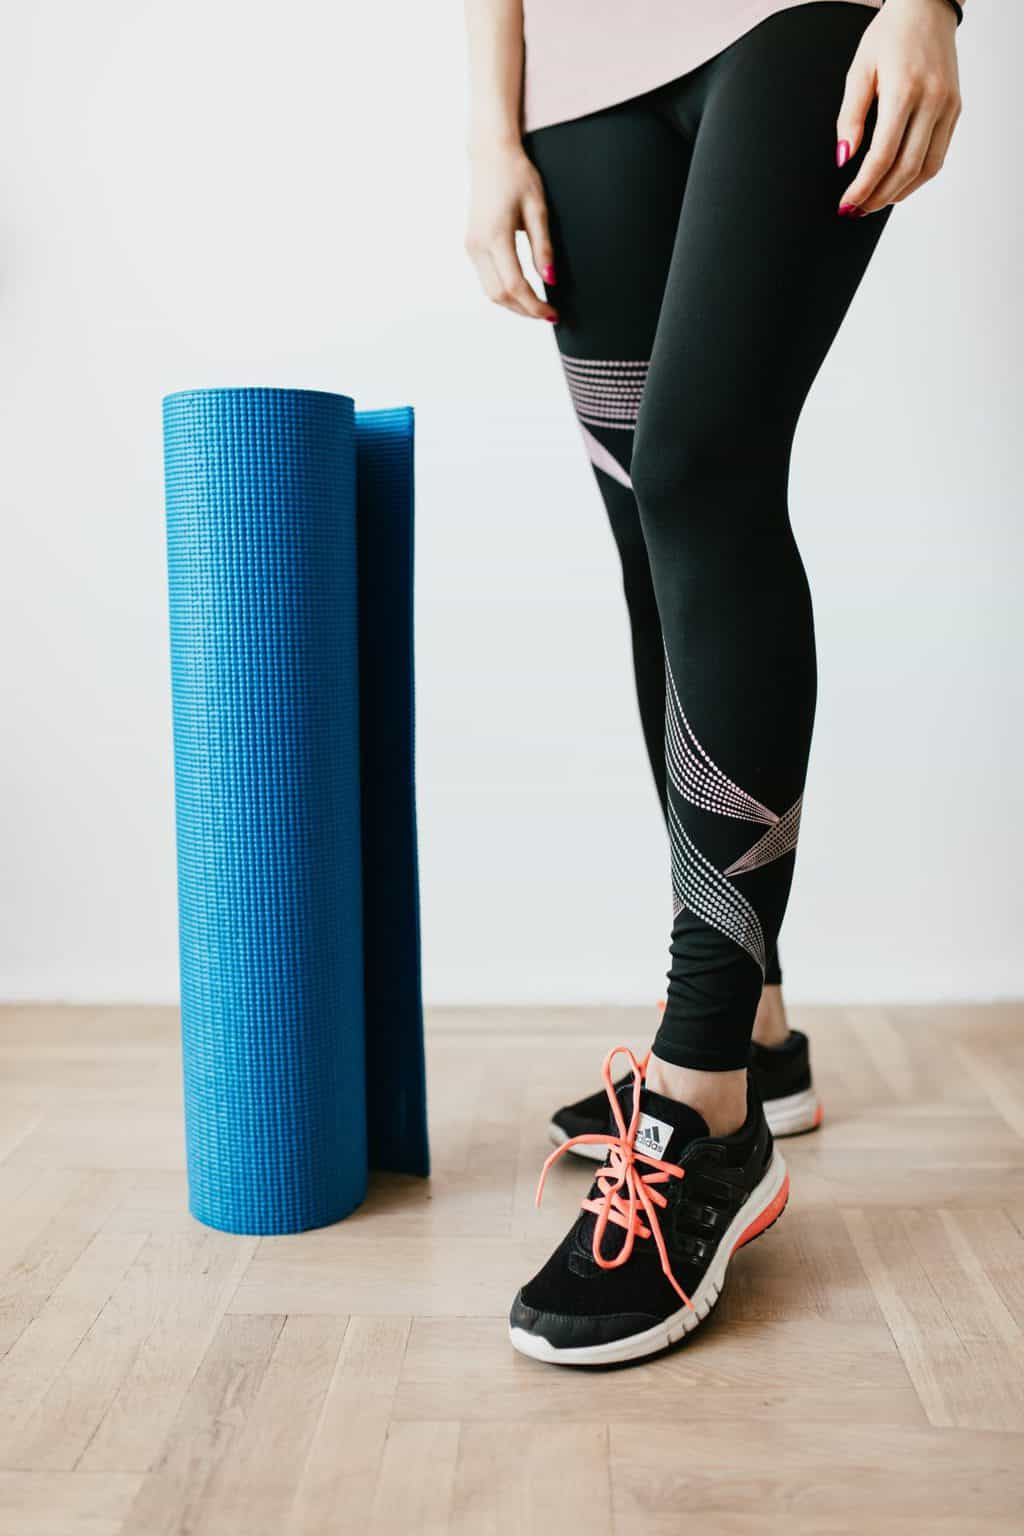 Top 5 workout routines to carry out when trying to conceive